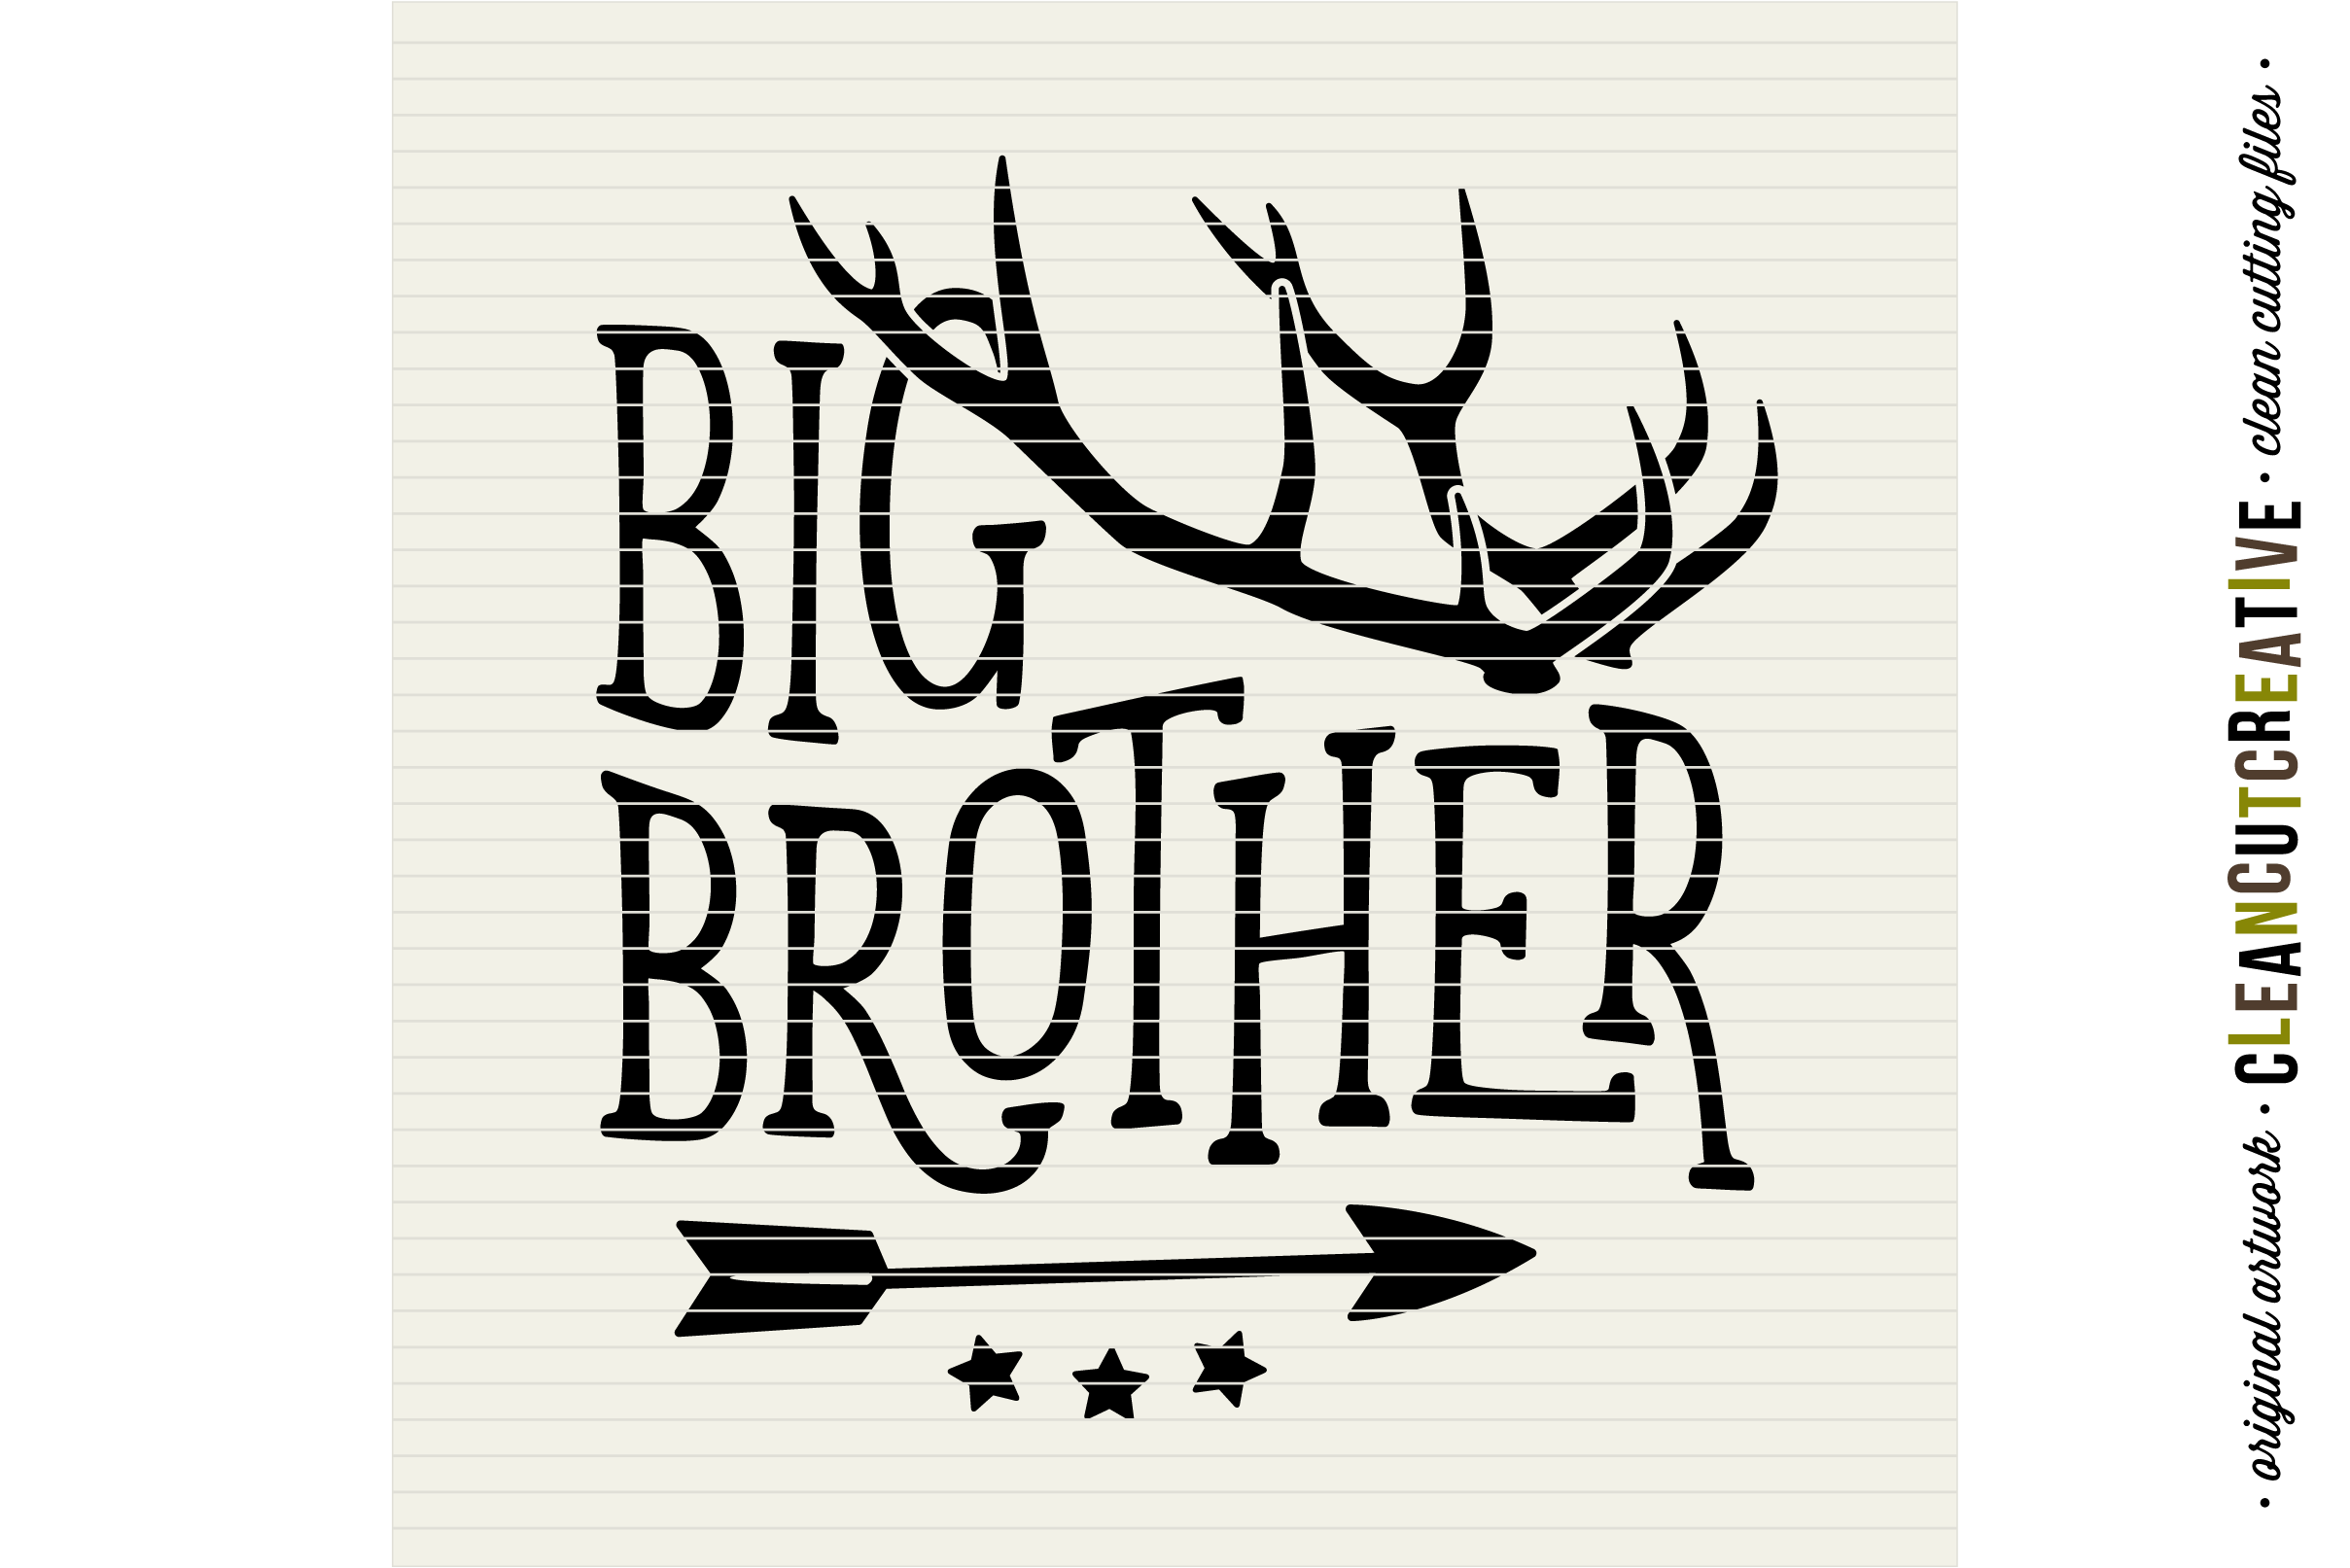 BIG BROTHER cutfile design withantlers and arrow - SVG DXF EPS PNG - cut file cutting file clipart - Cricut and Silhouette - clean cutting files example image 3